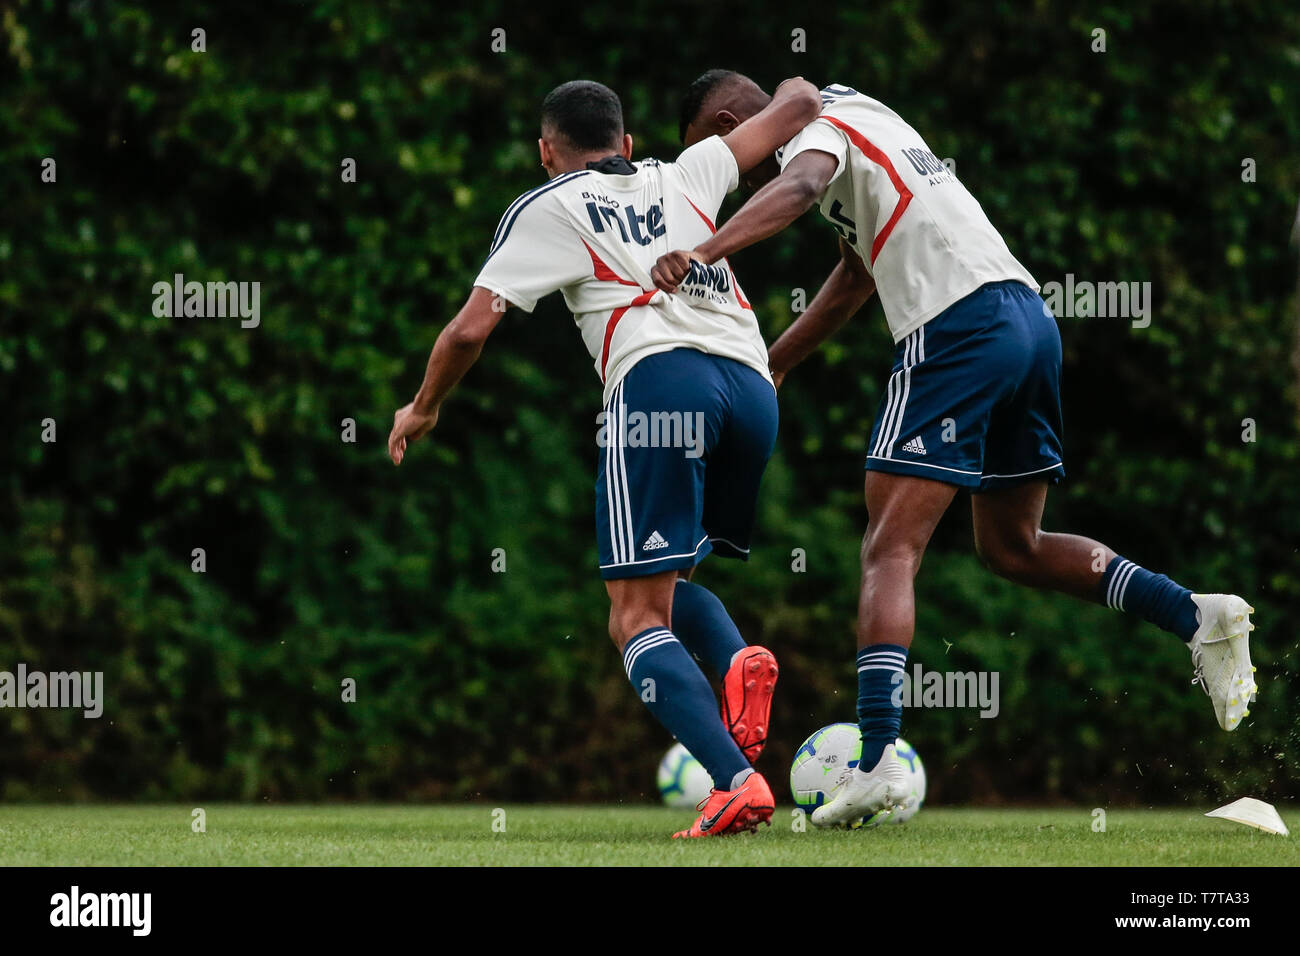 Sao Paulo, Brazil. 08th May, 2019. Training of Sao Paulo - Brenner (e) and Helinho during training of Sao Paulo at CT Barra Funda. Credit: AGIF/Alamy Live News - Stock Image